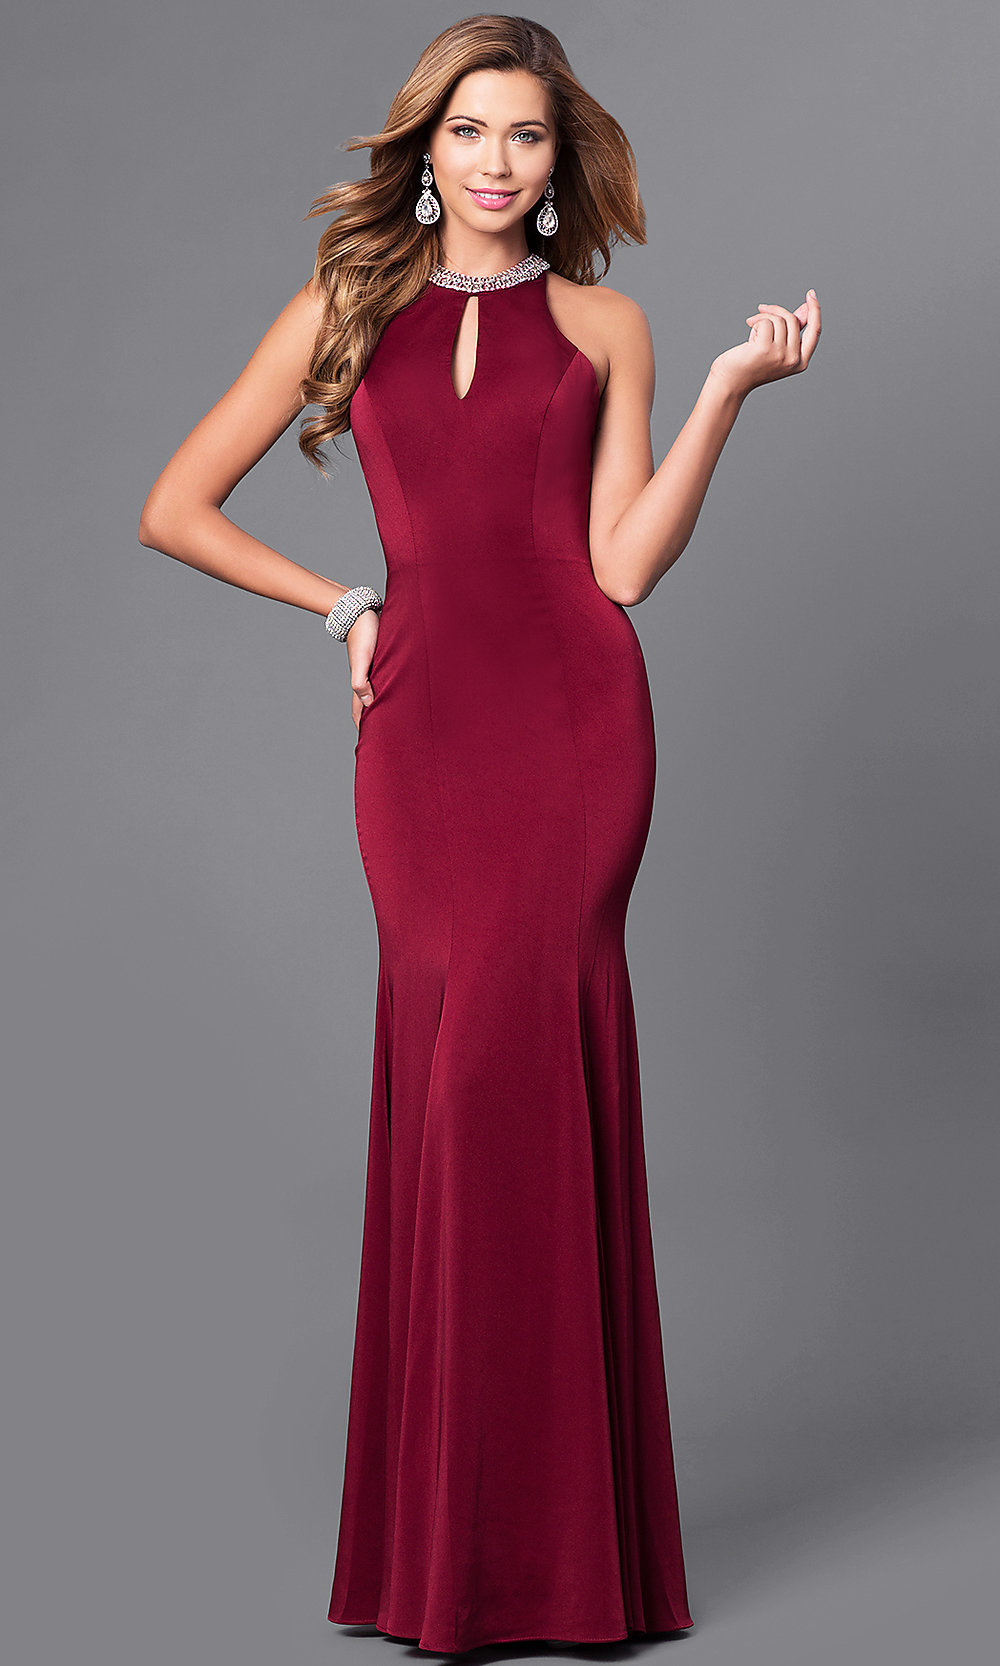 Jeweled Neckline Long Mermaid Prom Dress - PromGirl